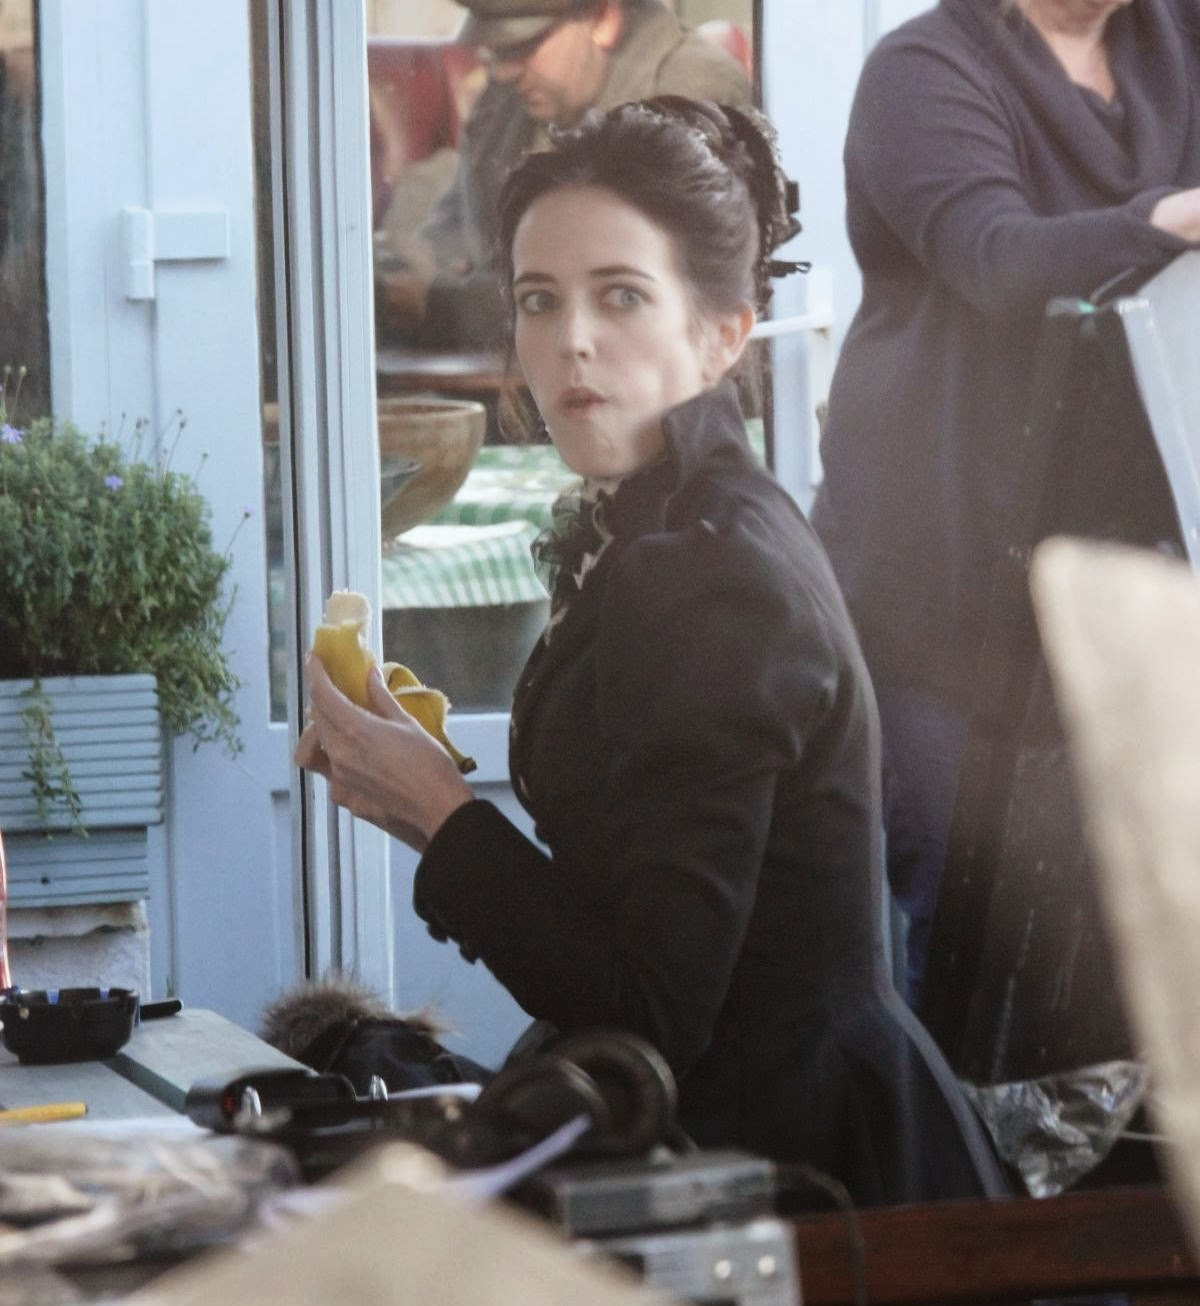 http://3.bp.blogspot.com/-ylVNB5ilM7s/Ut2KZw2ZxrI/AAAAAAAAQhg/Ugy_dBimxM8/s1600/eva-green-on-the-set-of-penny-dreadful-in-ireland_9.jpg